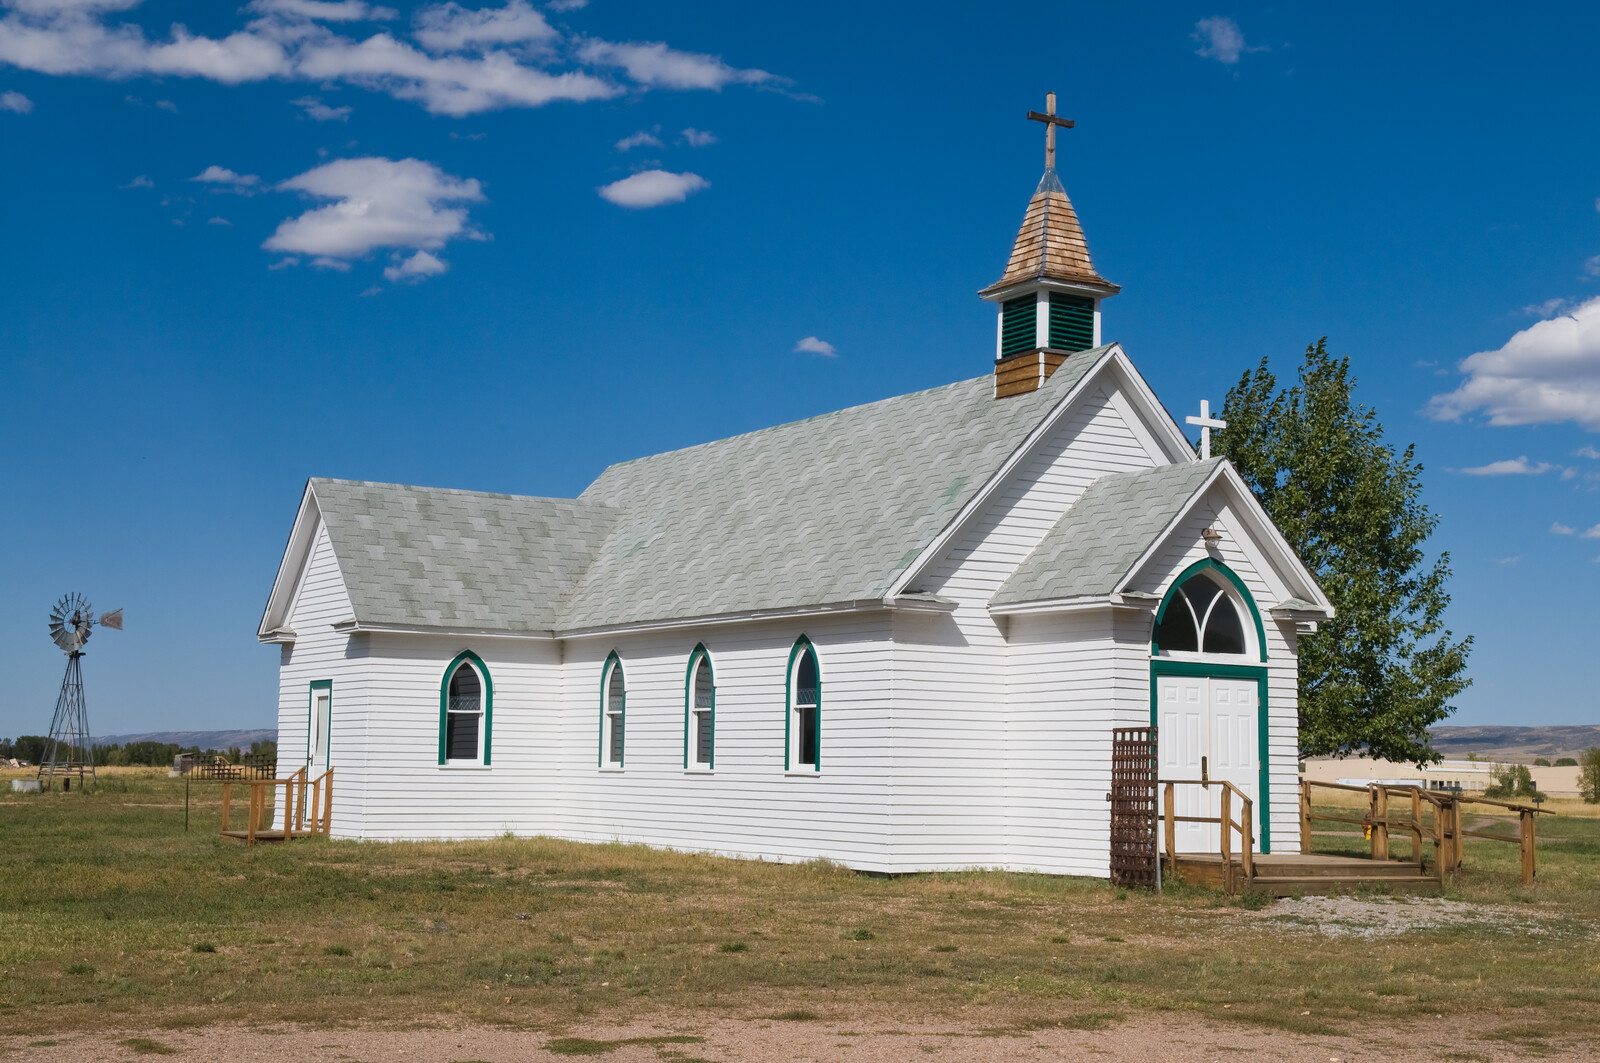 White Historic church in Laramie with a  windmill in the background, blue skies and a tree in the background